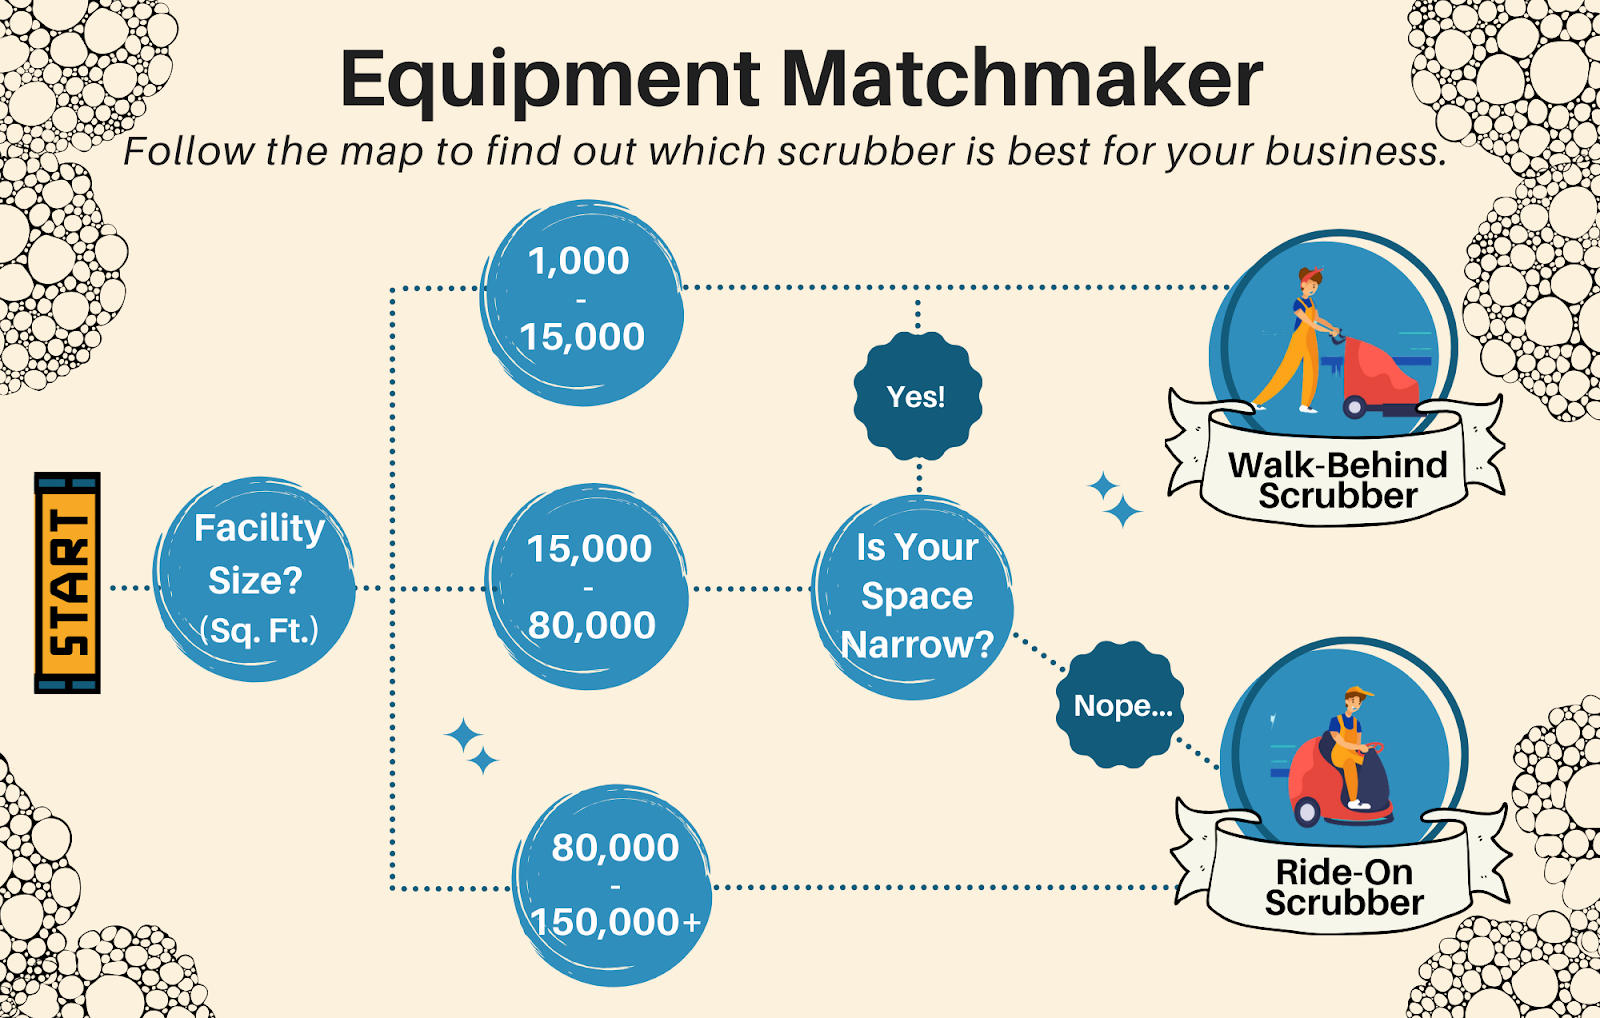 Determine if a ride-on scrubber is right for your business